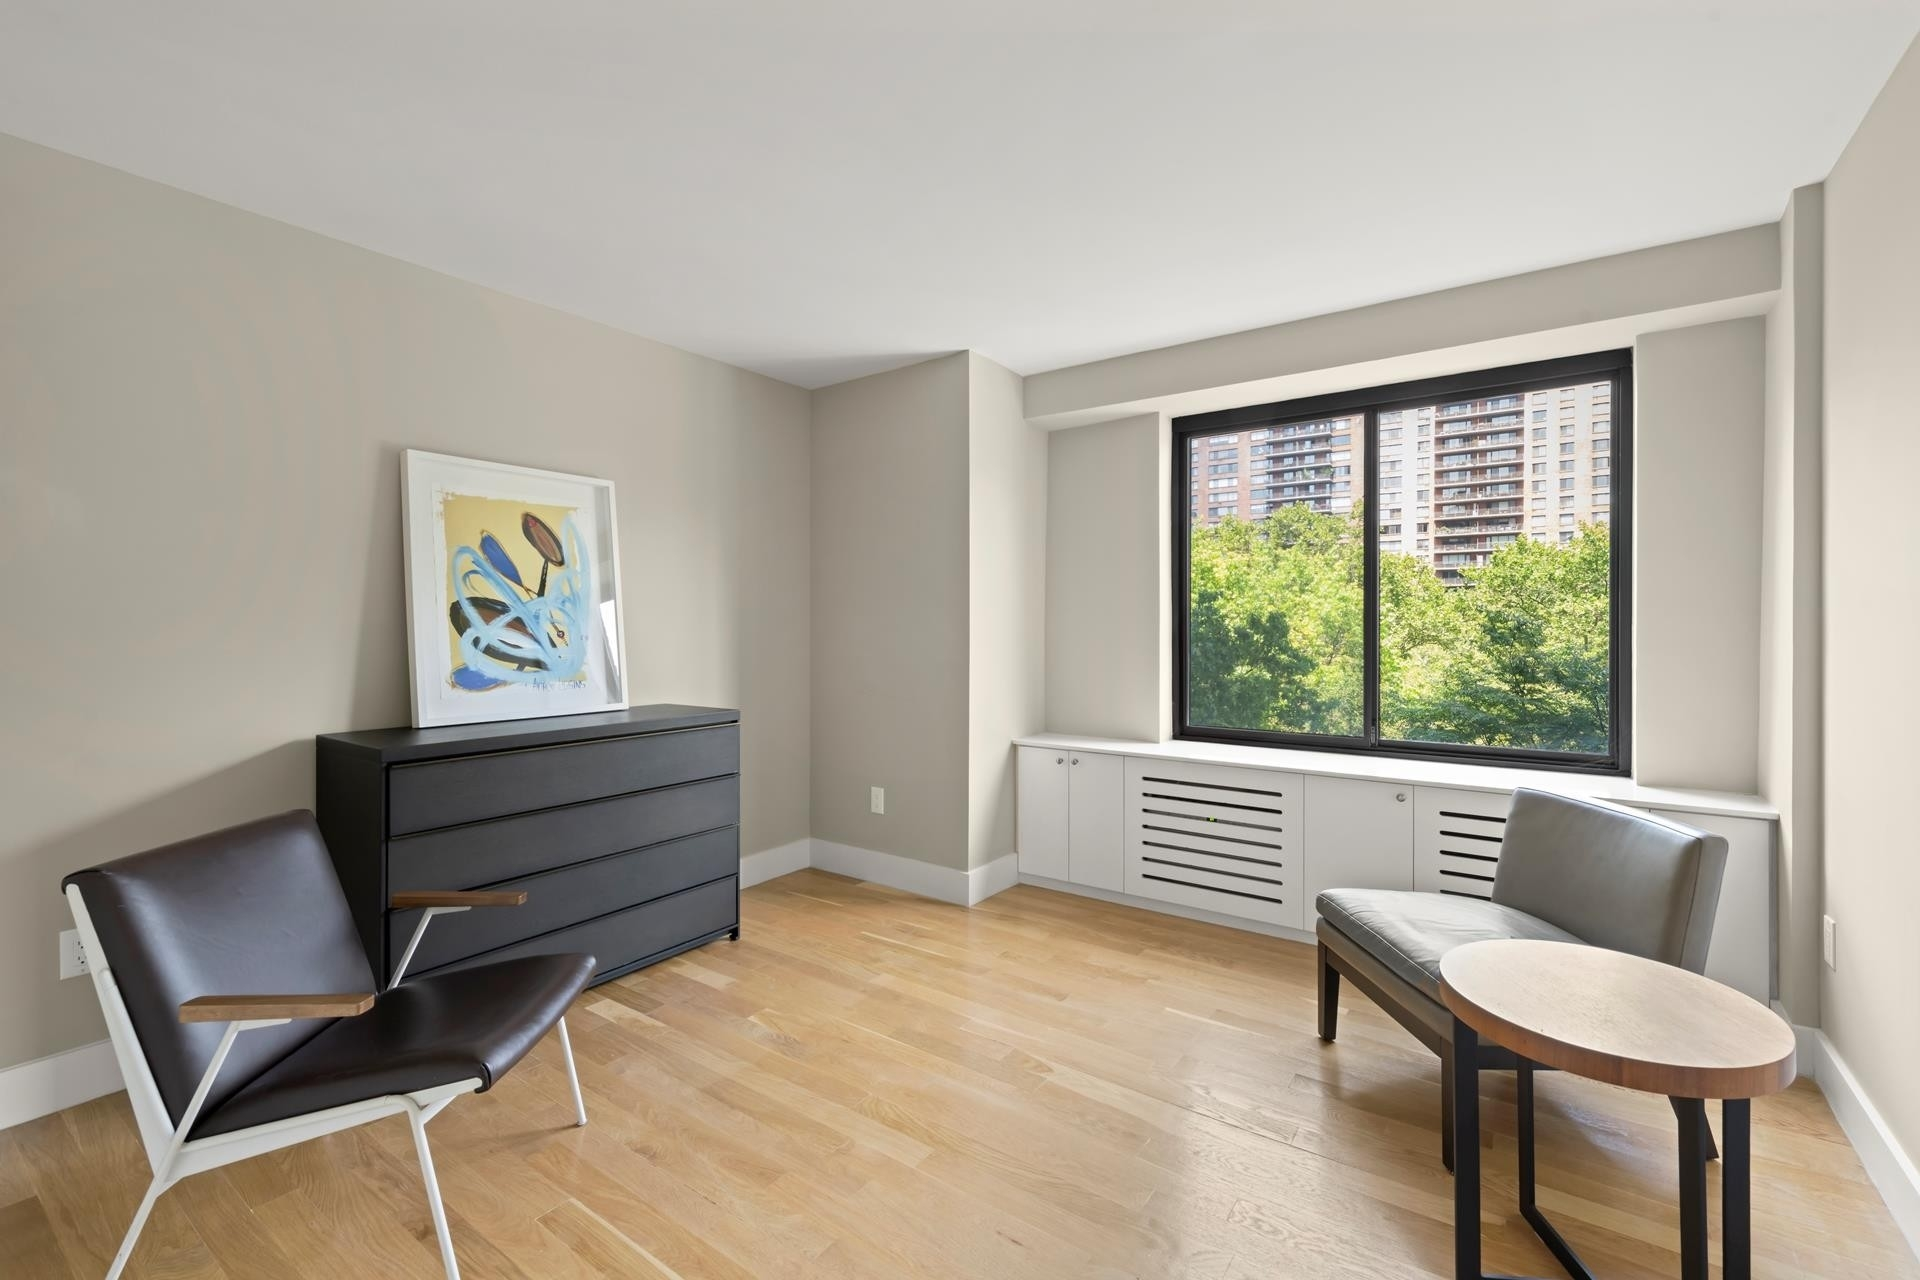 16. Condominiums for Sale at Vaux, The (Park Wes, 372 CENTRAL PARK W, 5BC Manhattan Valley, New York, NY 10025